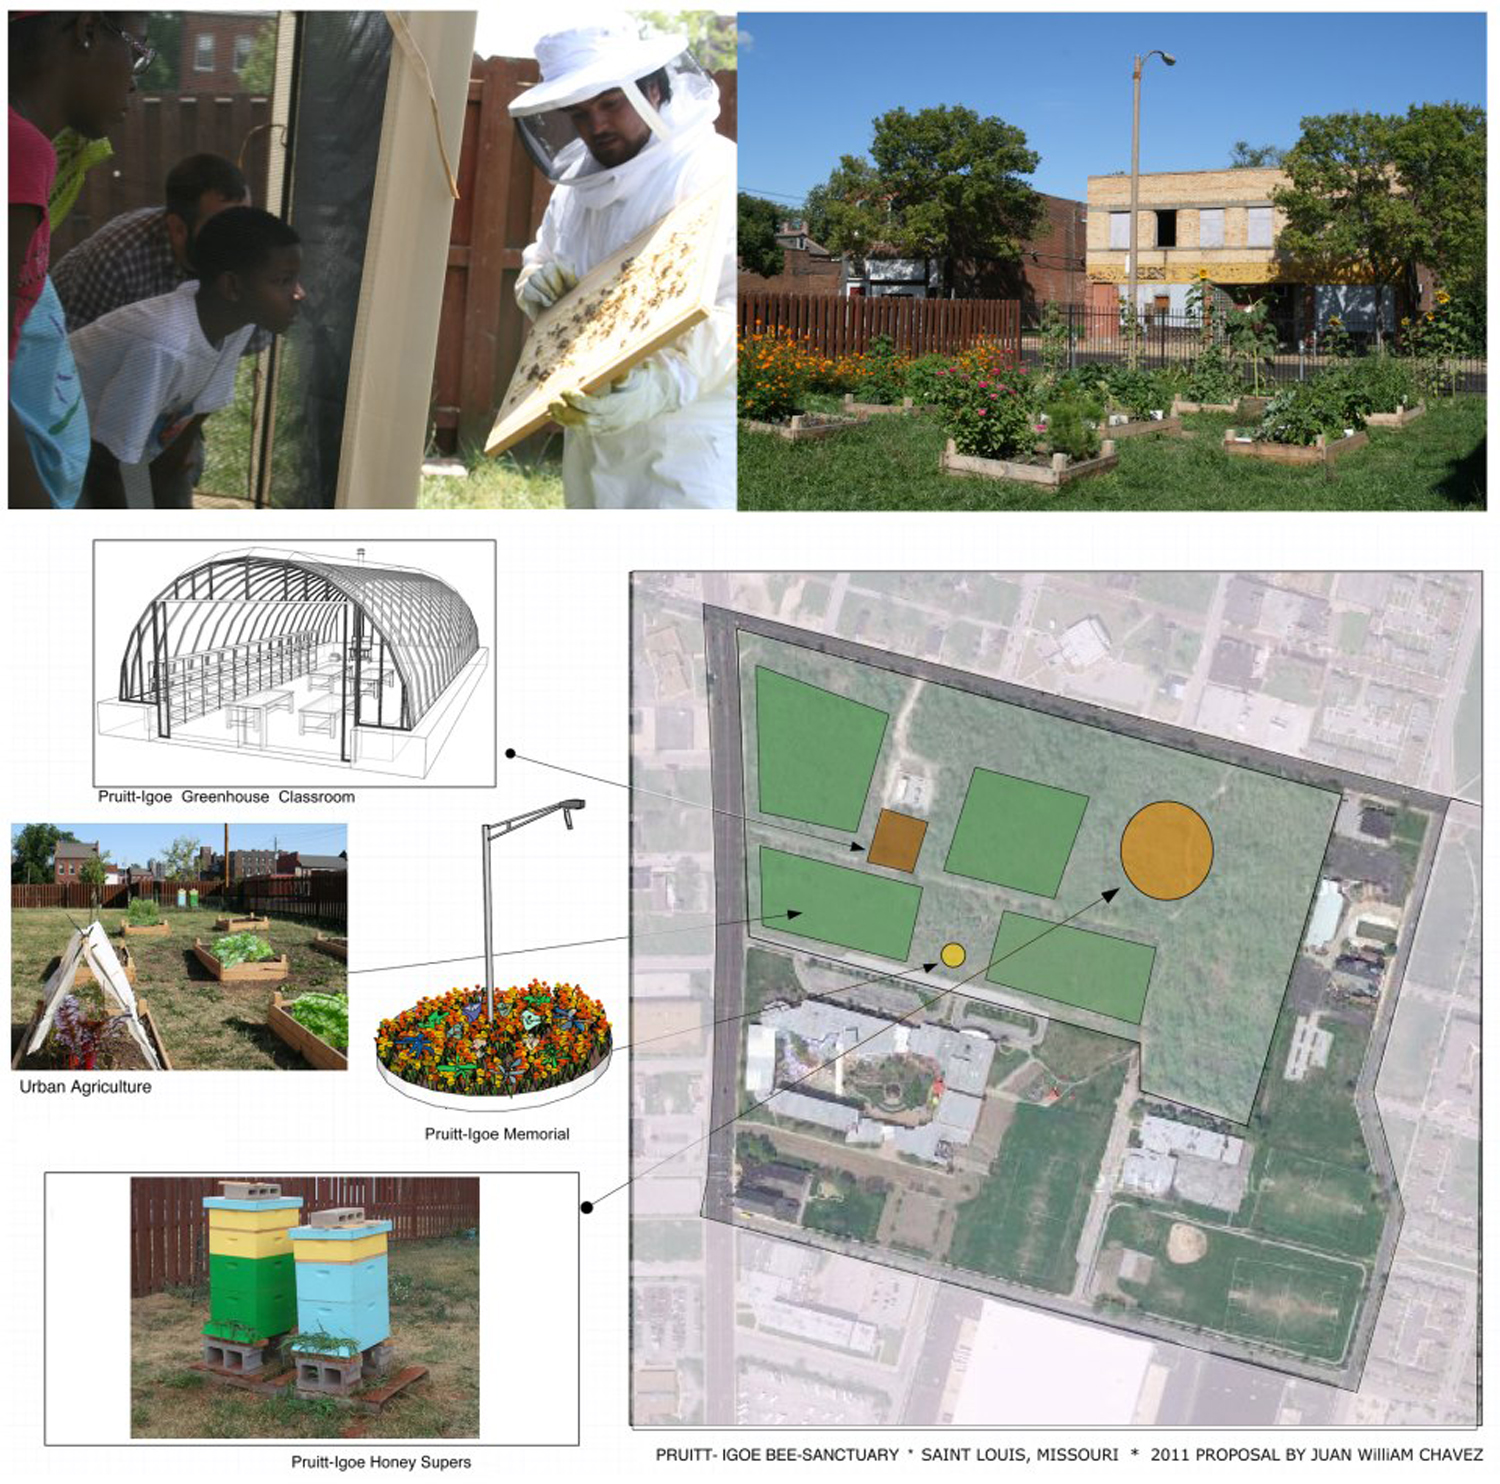 Living Proposal: Pruitt-Igoe Bee Sanctuary Pilot Project